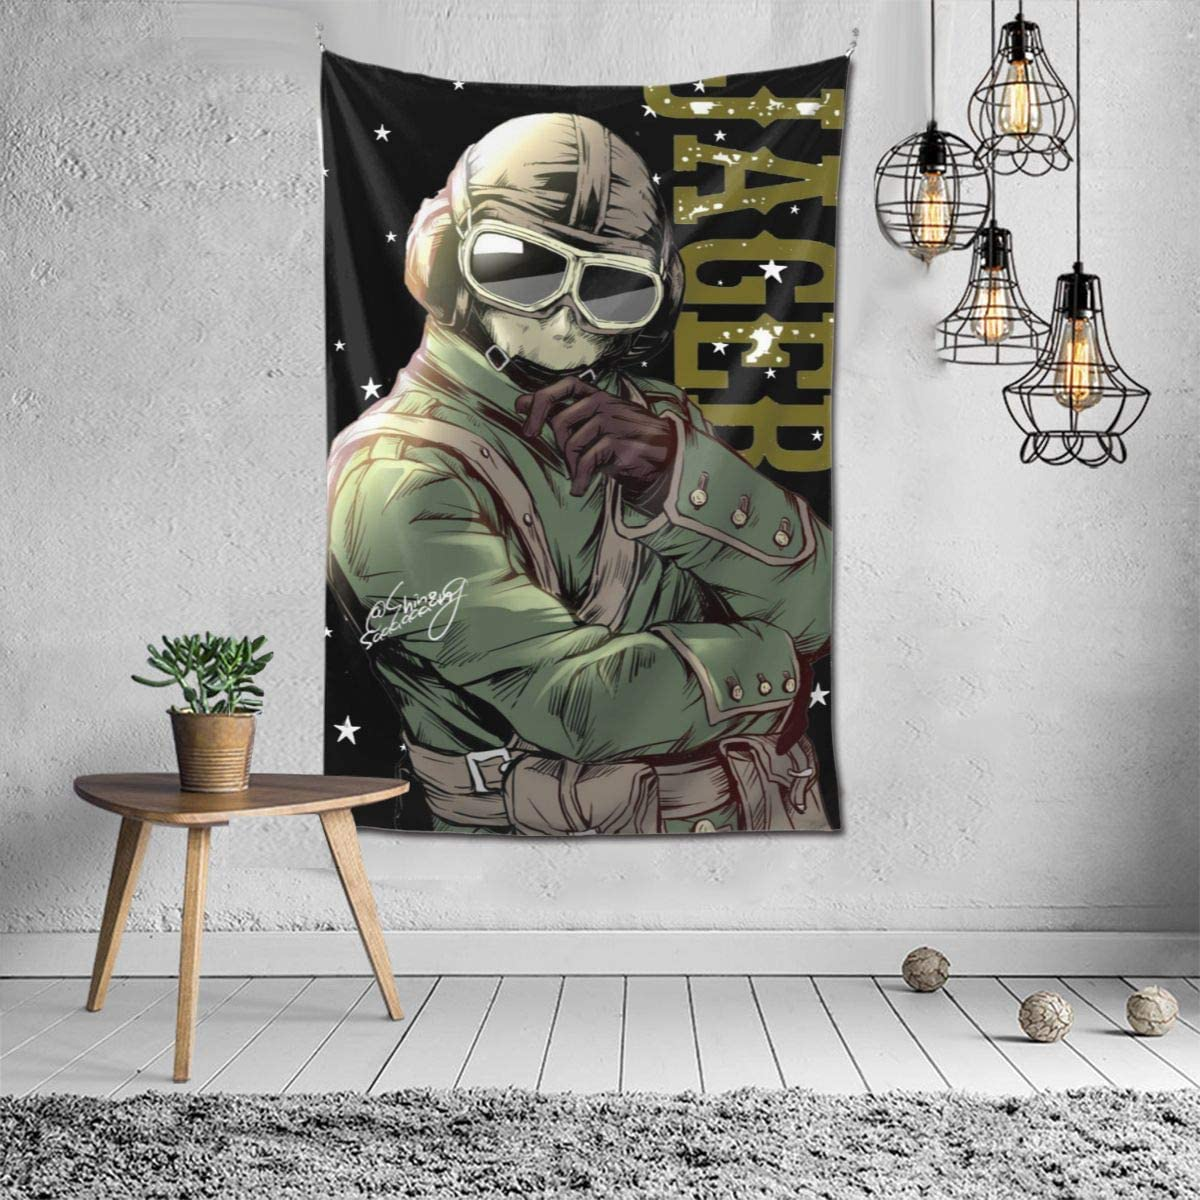 Snanna Jager Rainbow Six Siege Memes Tapestry Wall Hanging, Tapestries Wall Blanket Wall Art for Living Room Bedroom Home Decor 90 X 60 Inch